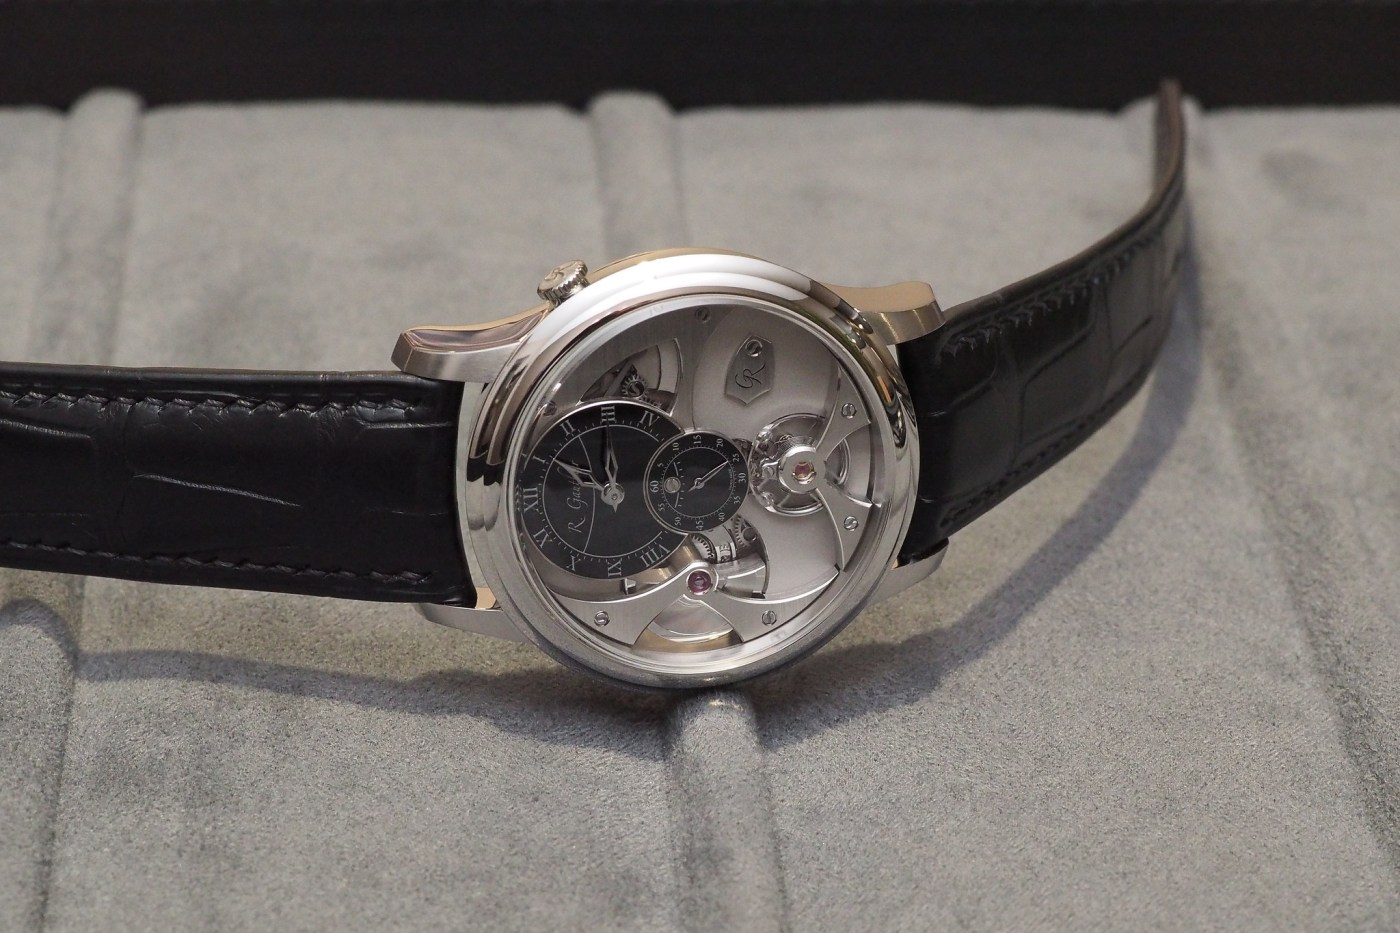 Insight Micro-Rotor by Romain Gauthier